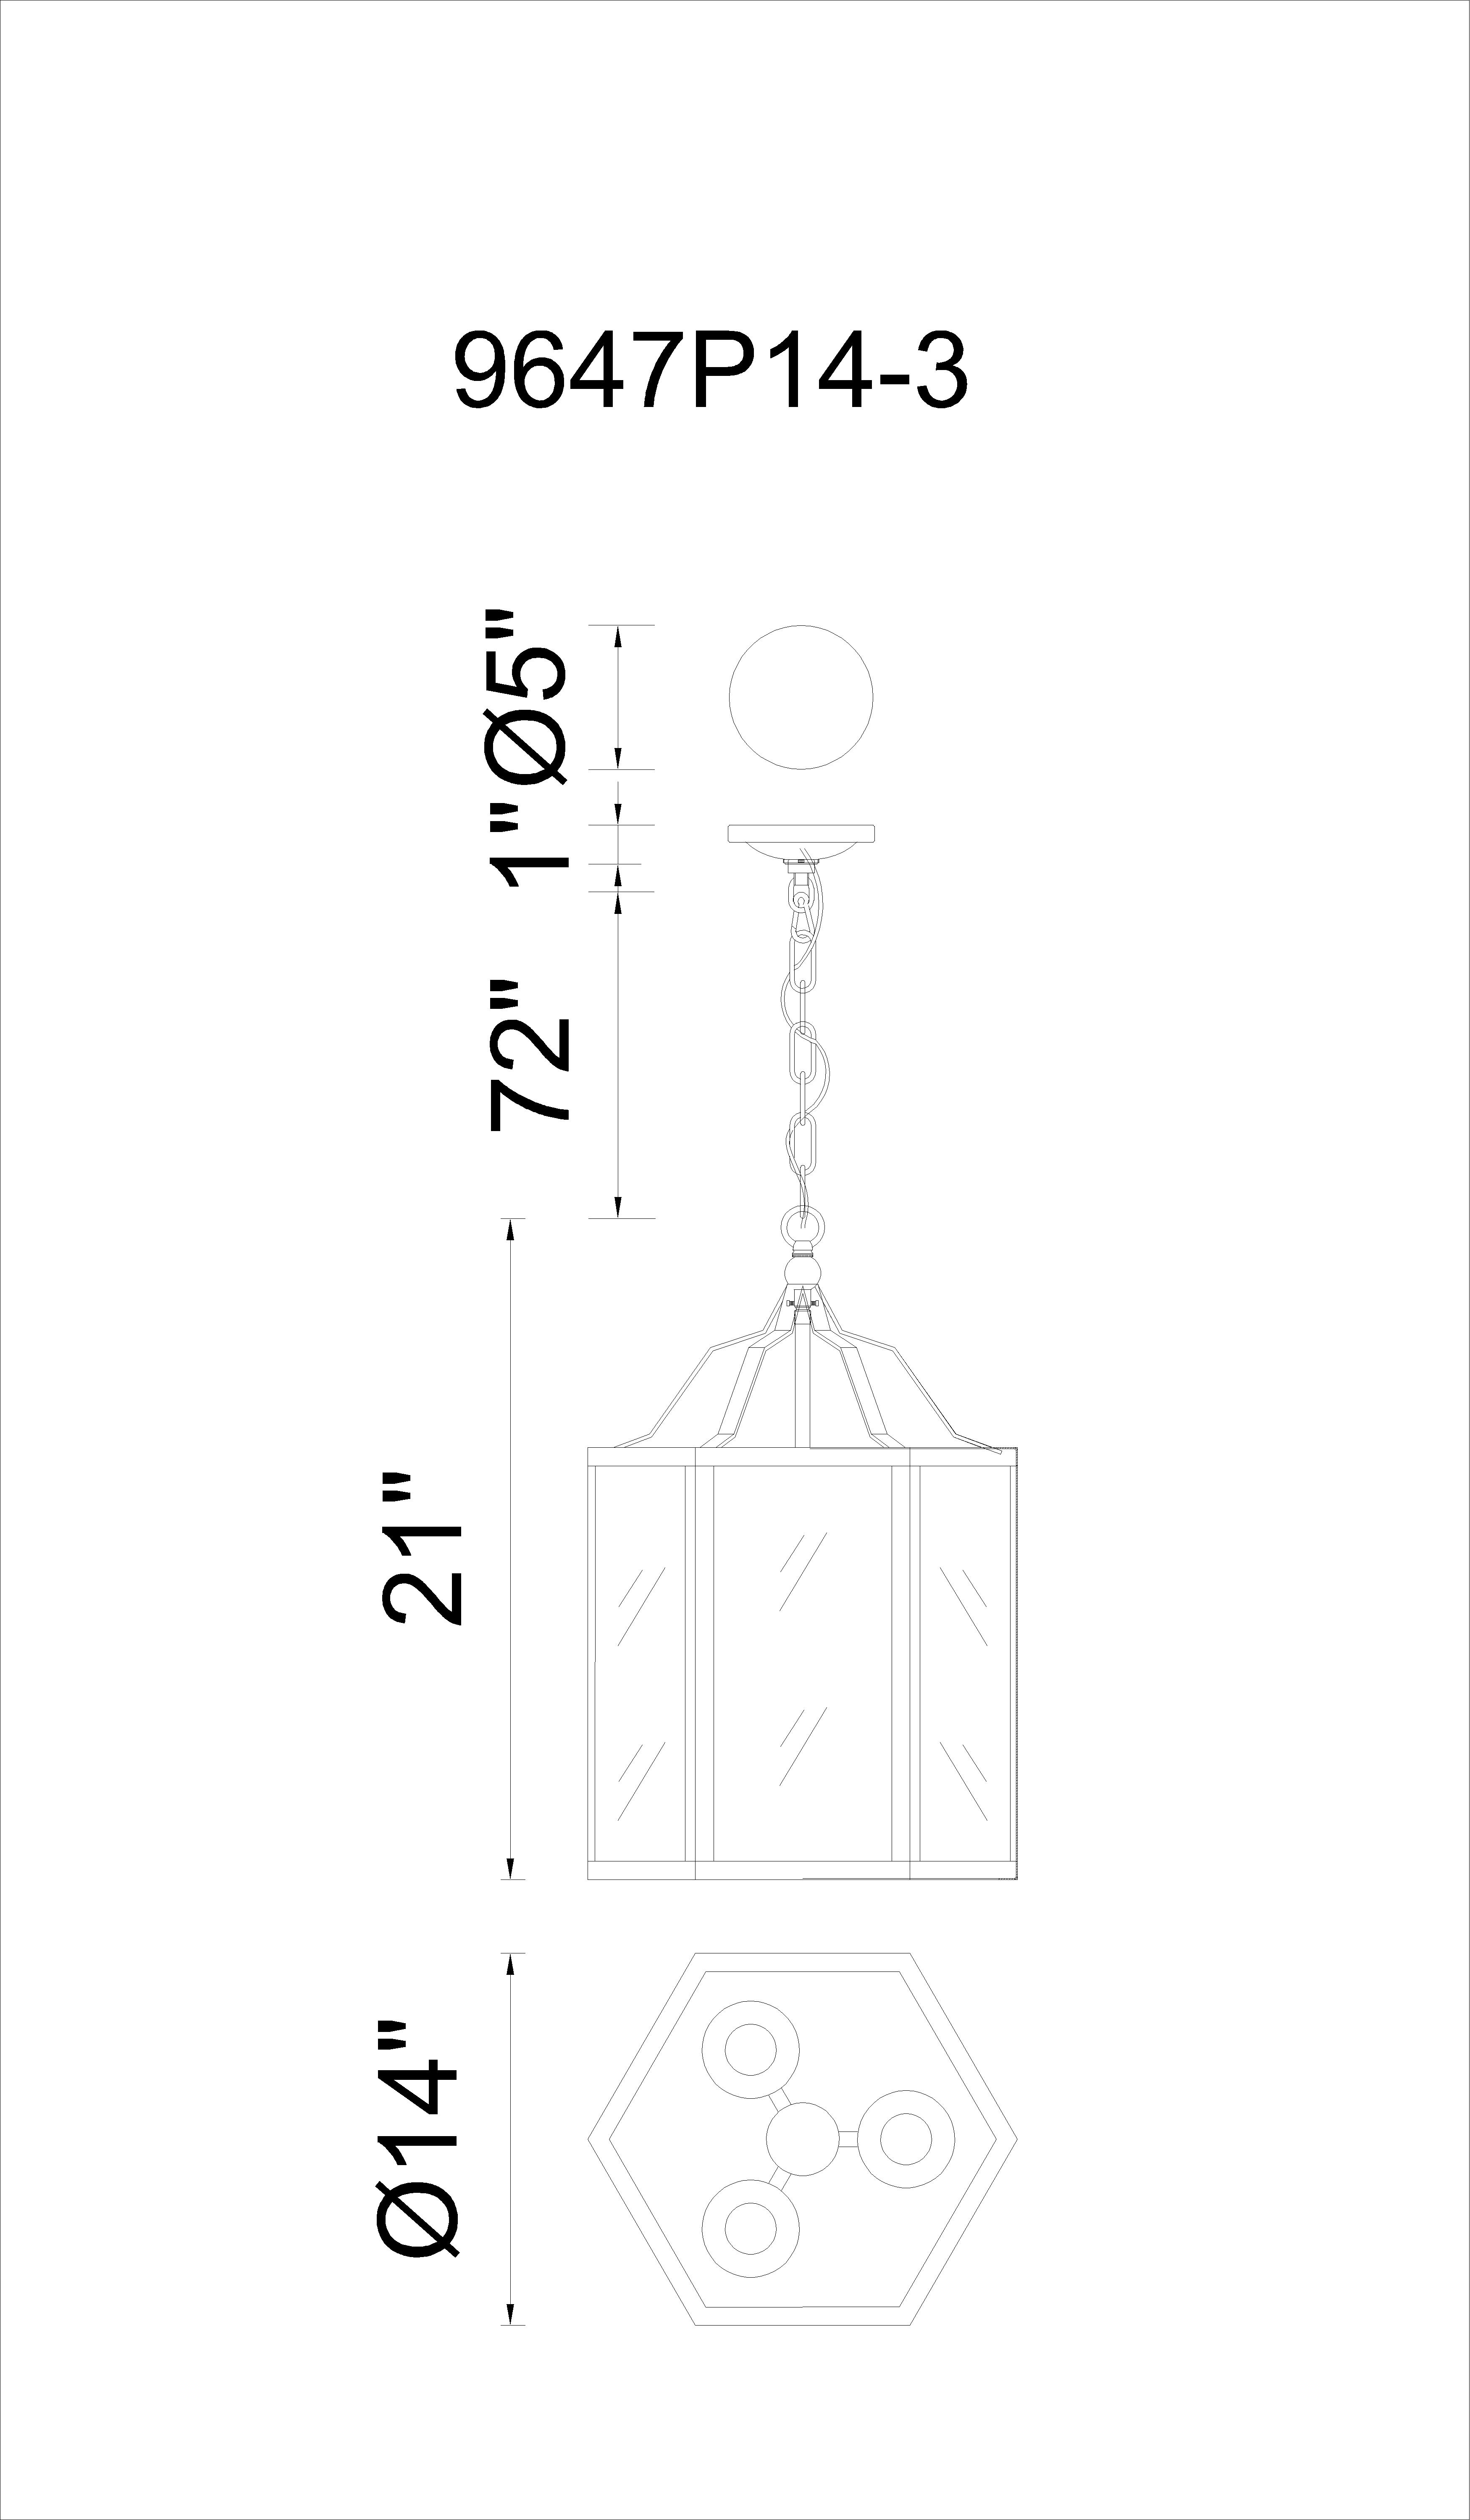 CWI Lighting Desire 3 Light Up Chandelier With Black Finish Model: 9647P14-3-101 Line Drawing